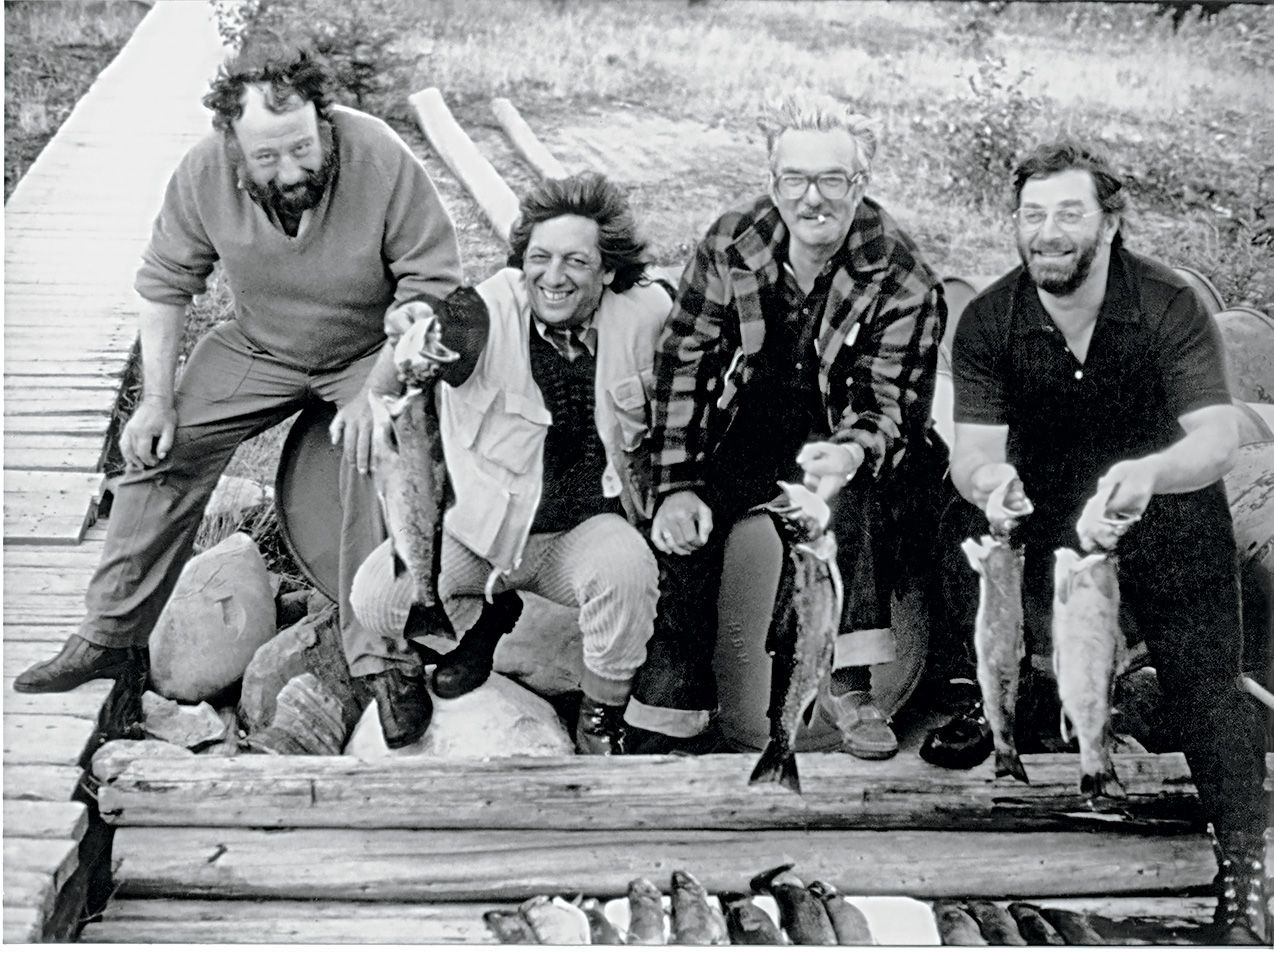 Claude Duthuit photograph of Paul Rebeyrolle, Riopelle, Jacques Lamy and Champlain Charest on a fishing trip, about 1975, print 2020, black and white photograph. Archives Yseult Riopelle. © Estate of Jean Paul Riopelle / SOCAN (2020). Photo Claude Duthuit – Archives Yseult Riopelle